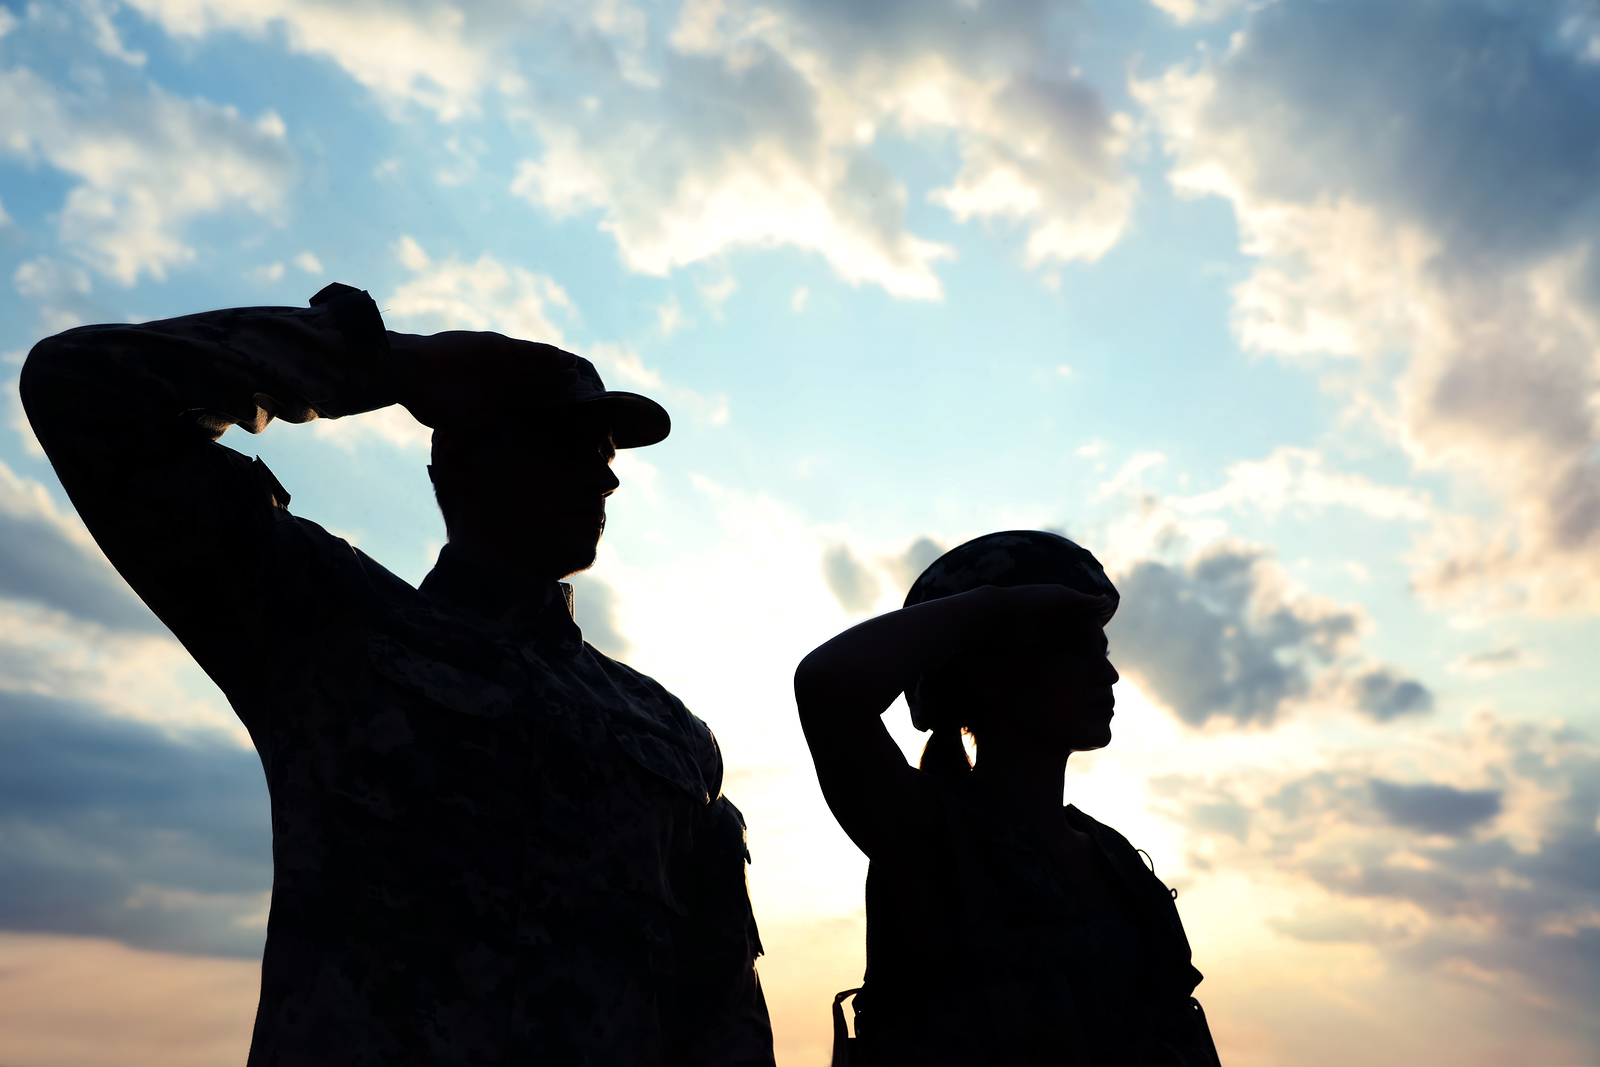 Soldiers in uniform saluting outdoors in the clouds. You can find a therapist providing counseling for veterans in Wesley Chapel, FL. She also provides mental health disability evaluation for VA benefits. You can get therapy for veterans near Tampa, FL at Sheltering Oaks Counseling in Wesley Chapel, FL